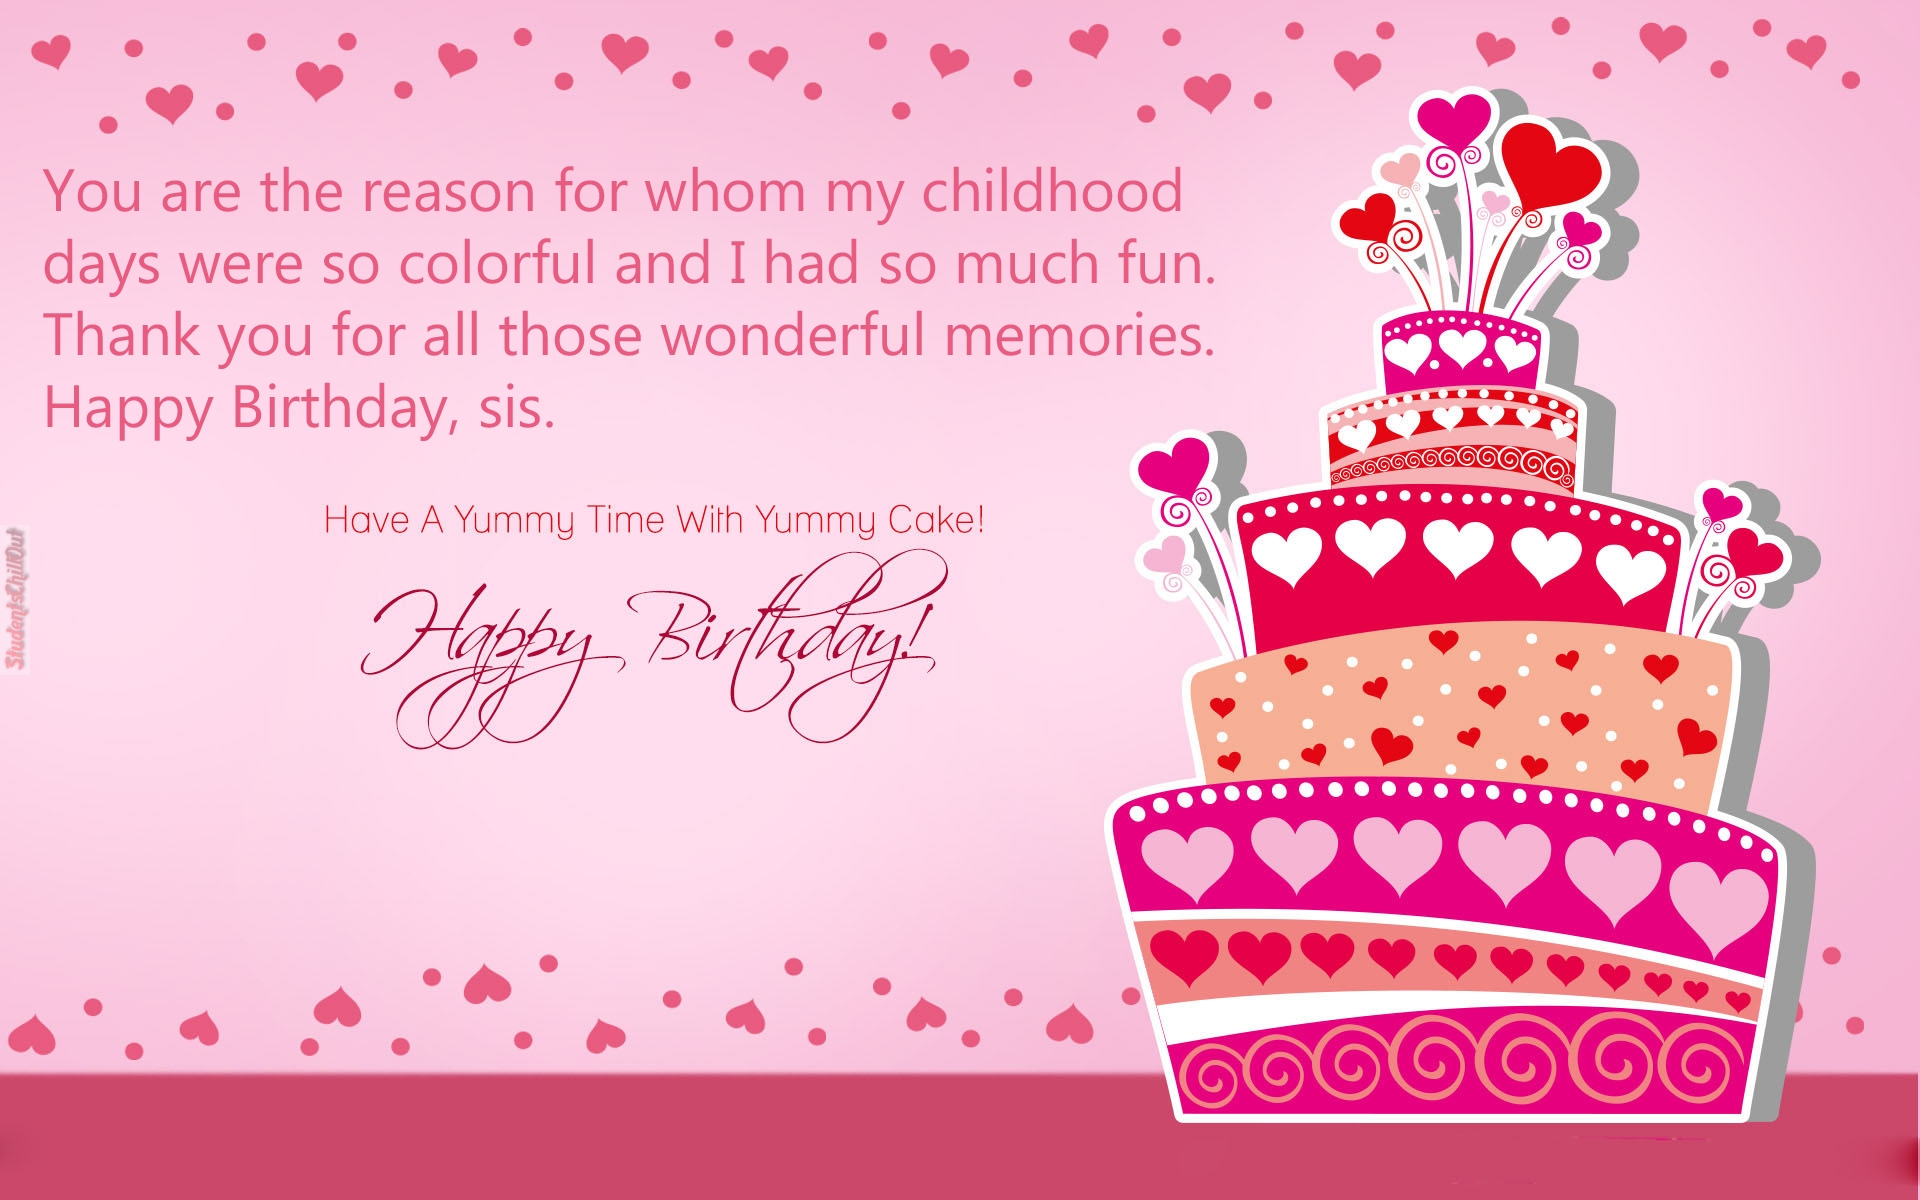 Inspirational thank you for happy birthday wishes best sister birthday wishes kristyandbryce Images